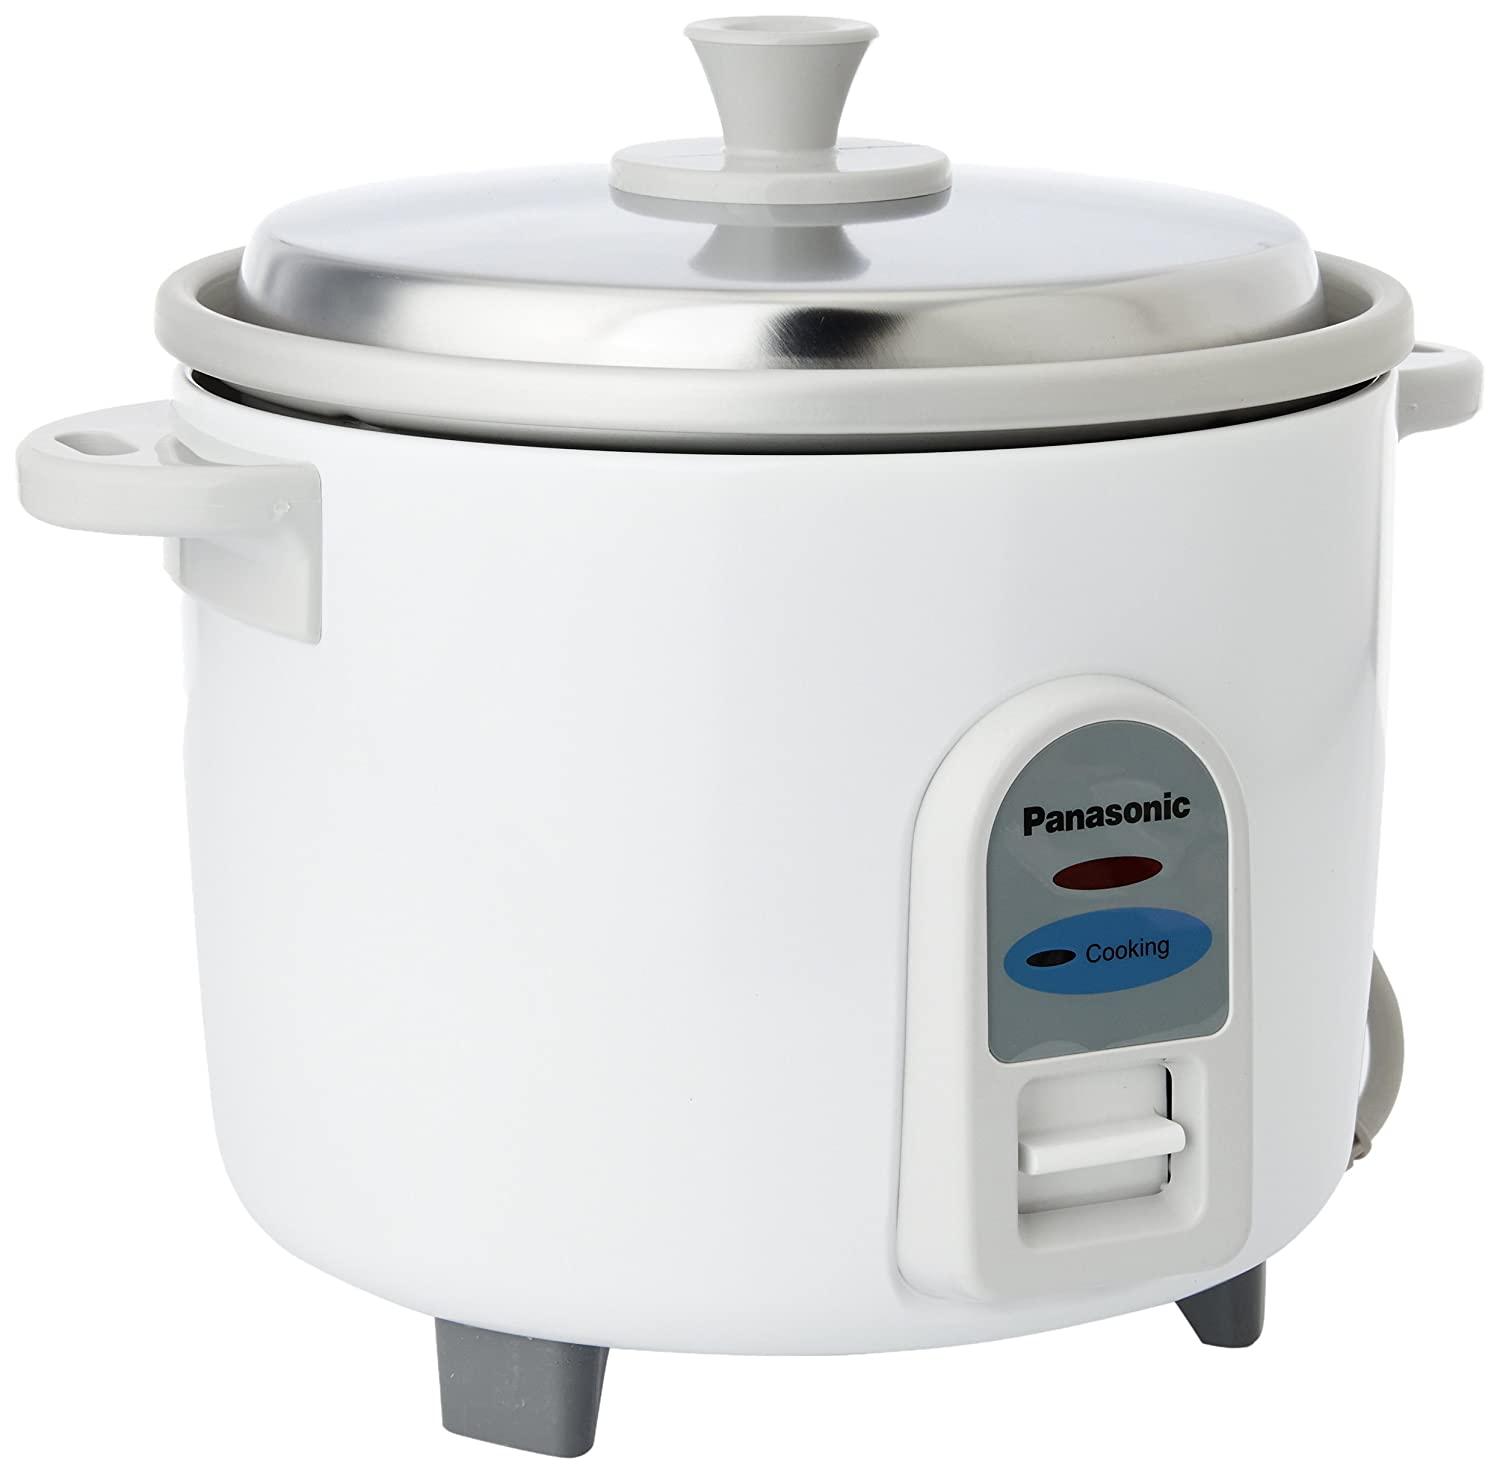 Best electric rice cooker review in India 2017